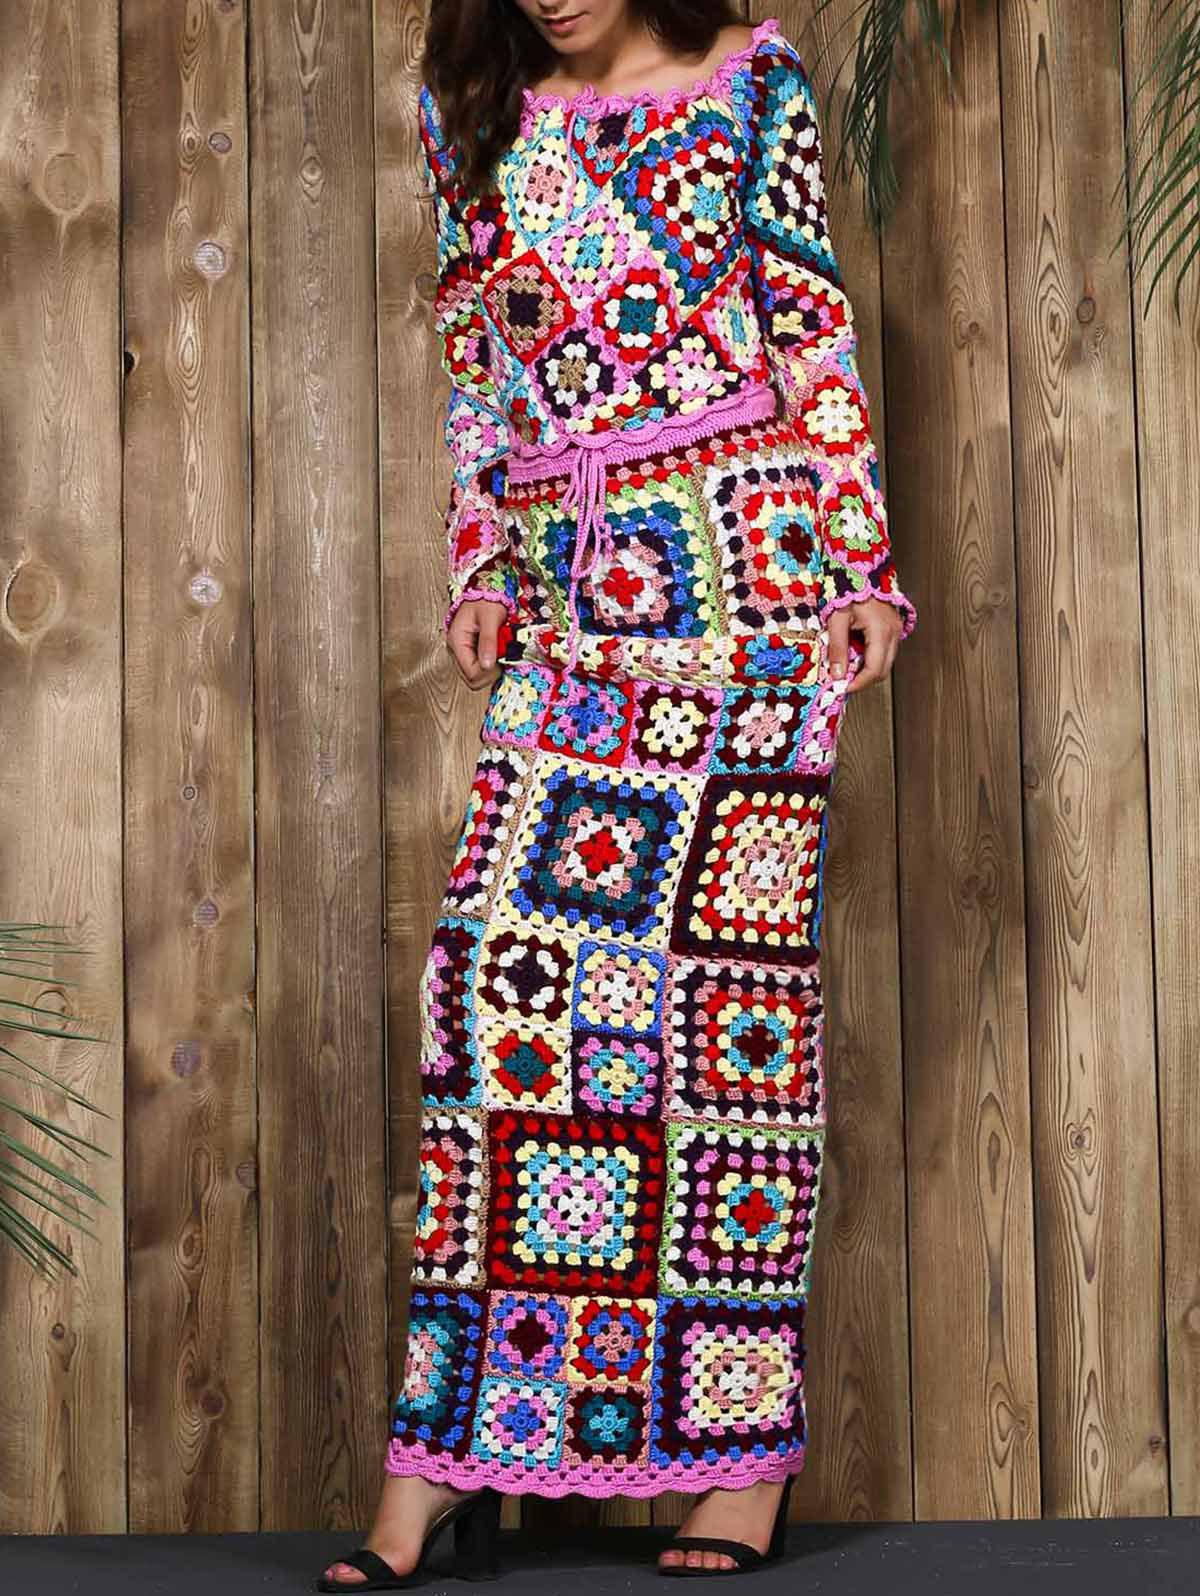 Limited Edition Off-The-Shoulder Granny SquaresCrochet Tank Top+Maxi Skirt For Women